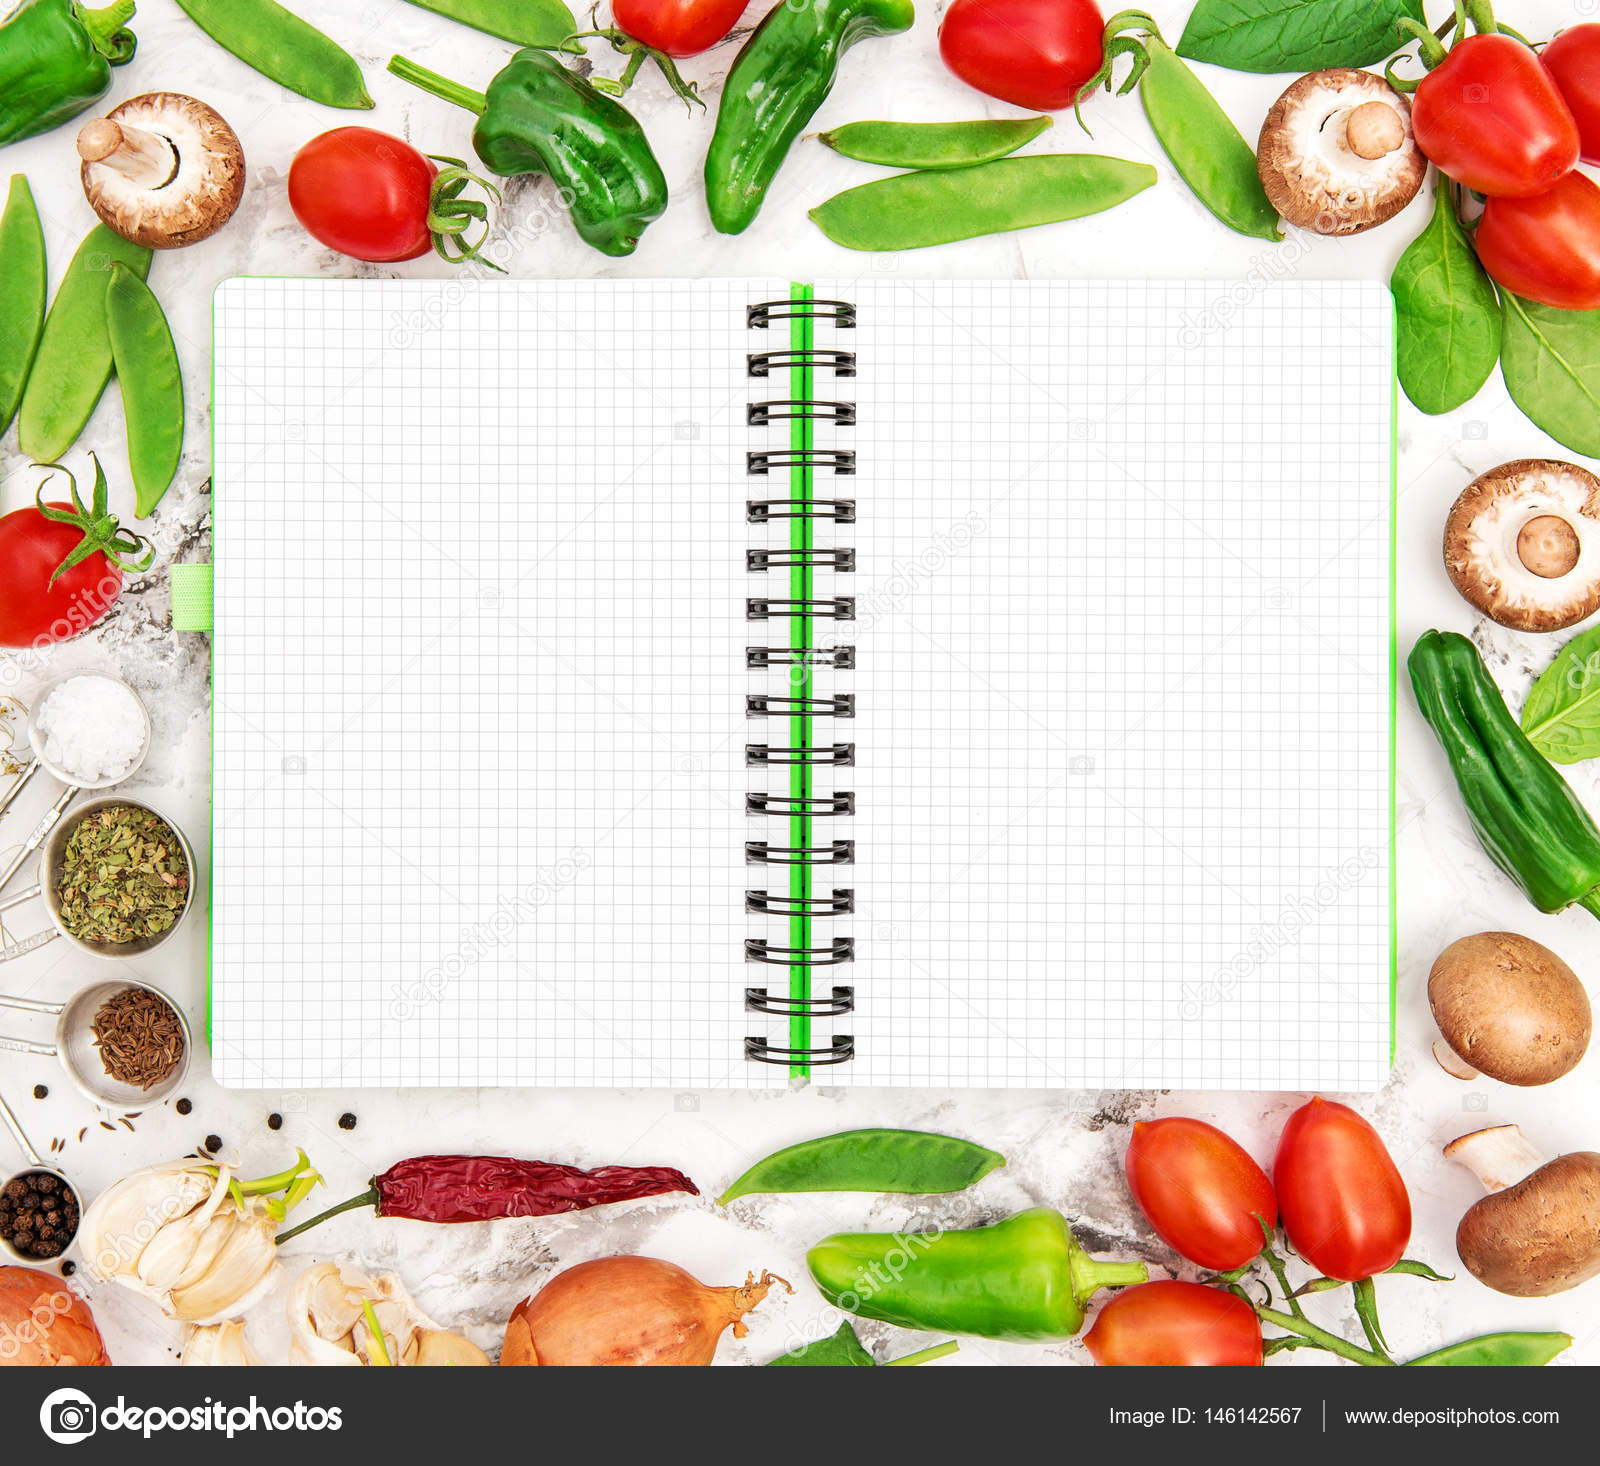 Open recipe book fresh vegetables healthy food organic nutrition open recipe book fresh vegetables healthy food organic nutrition stock photo forumfinder Images